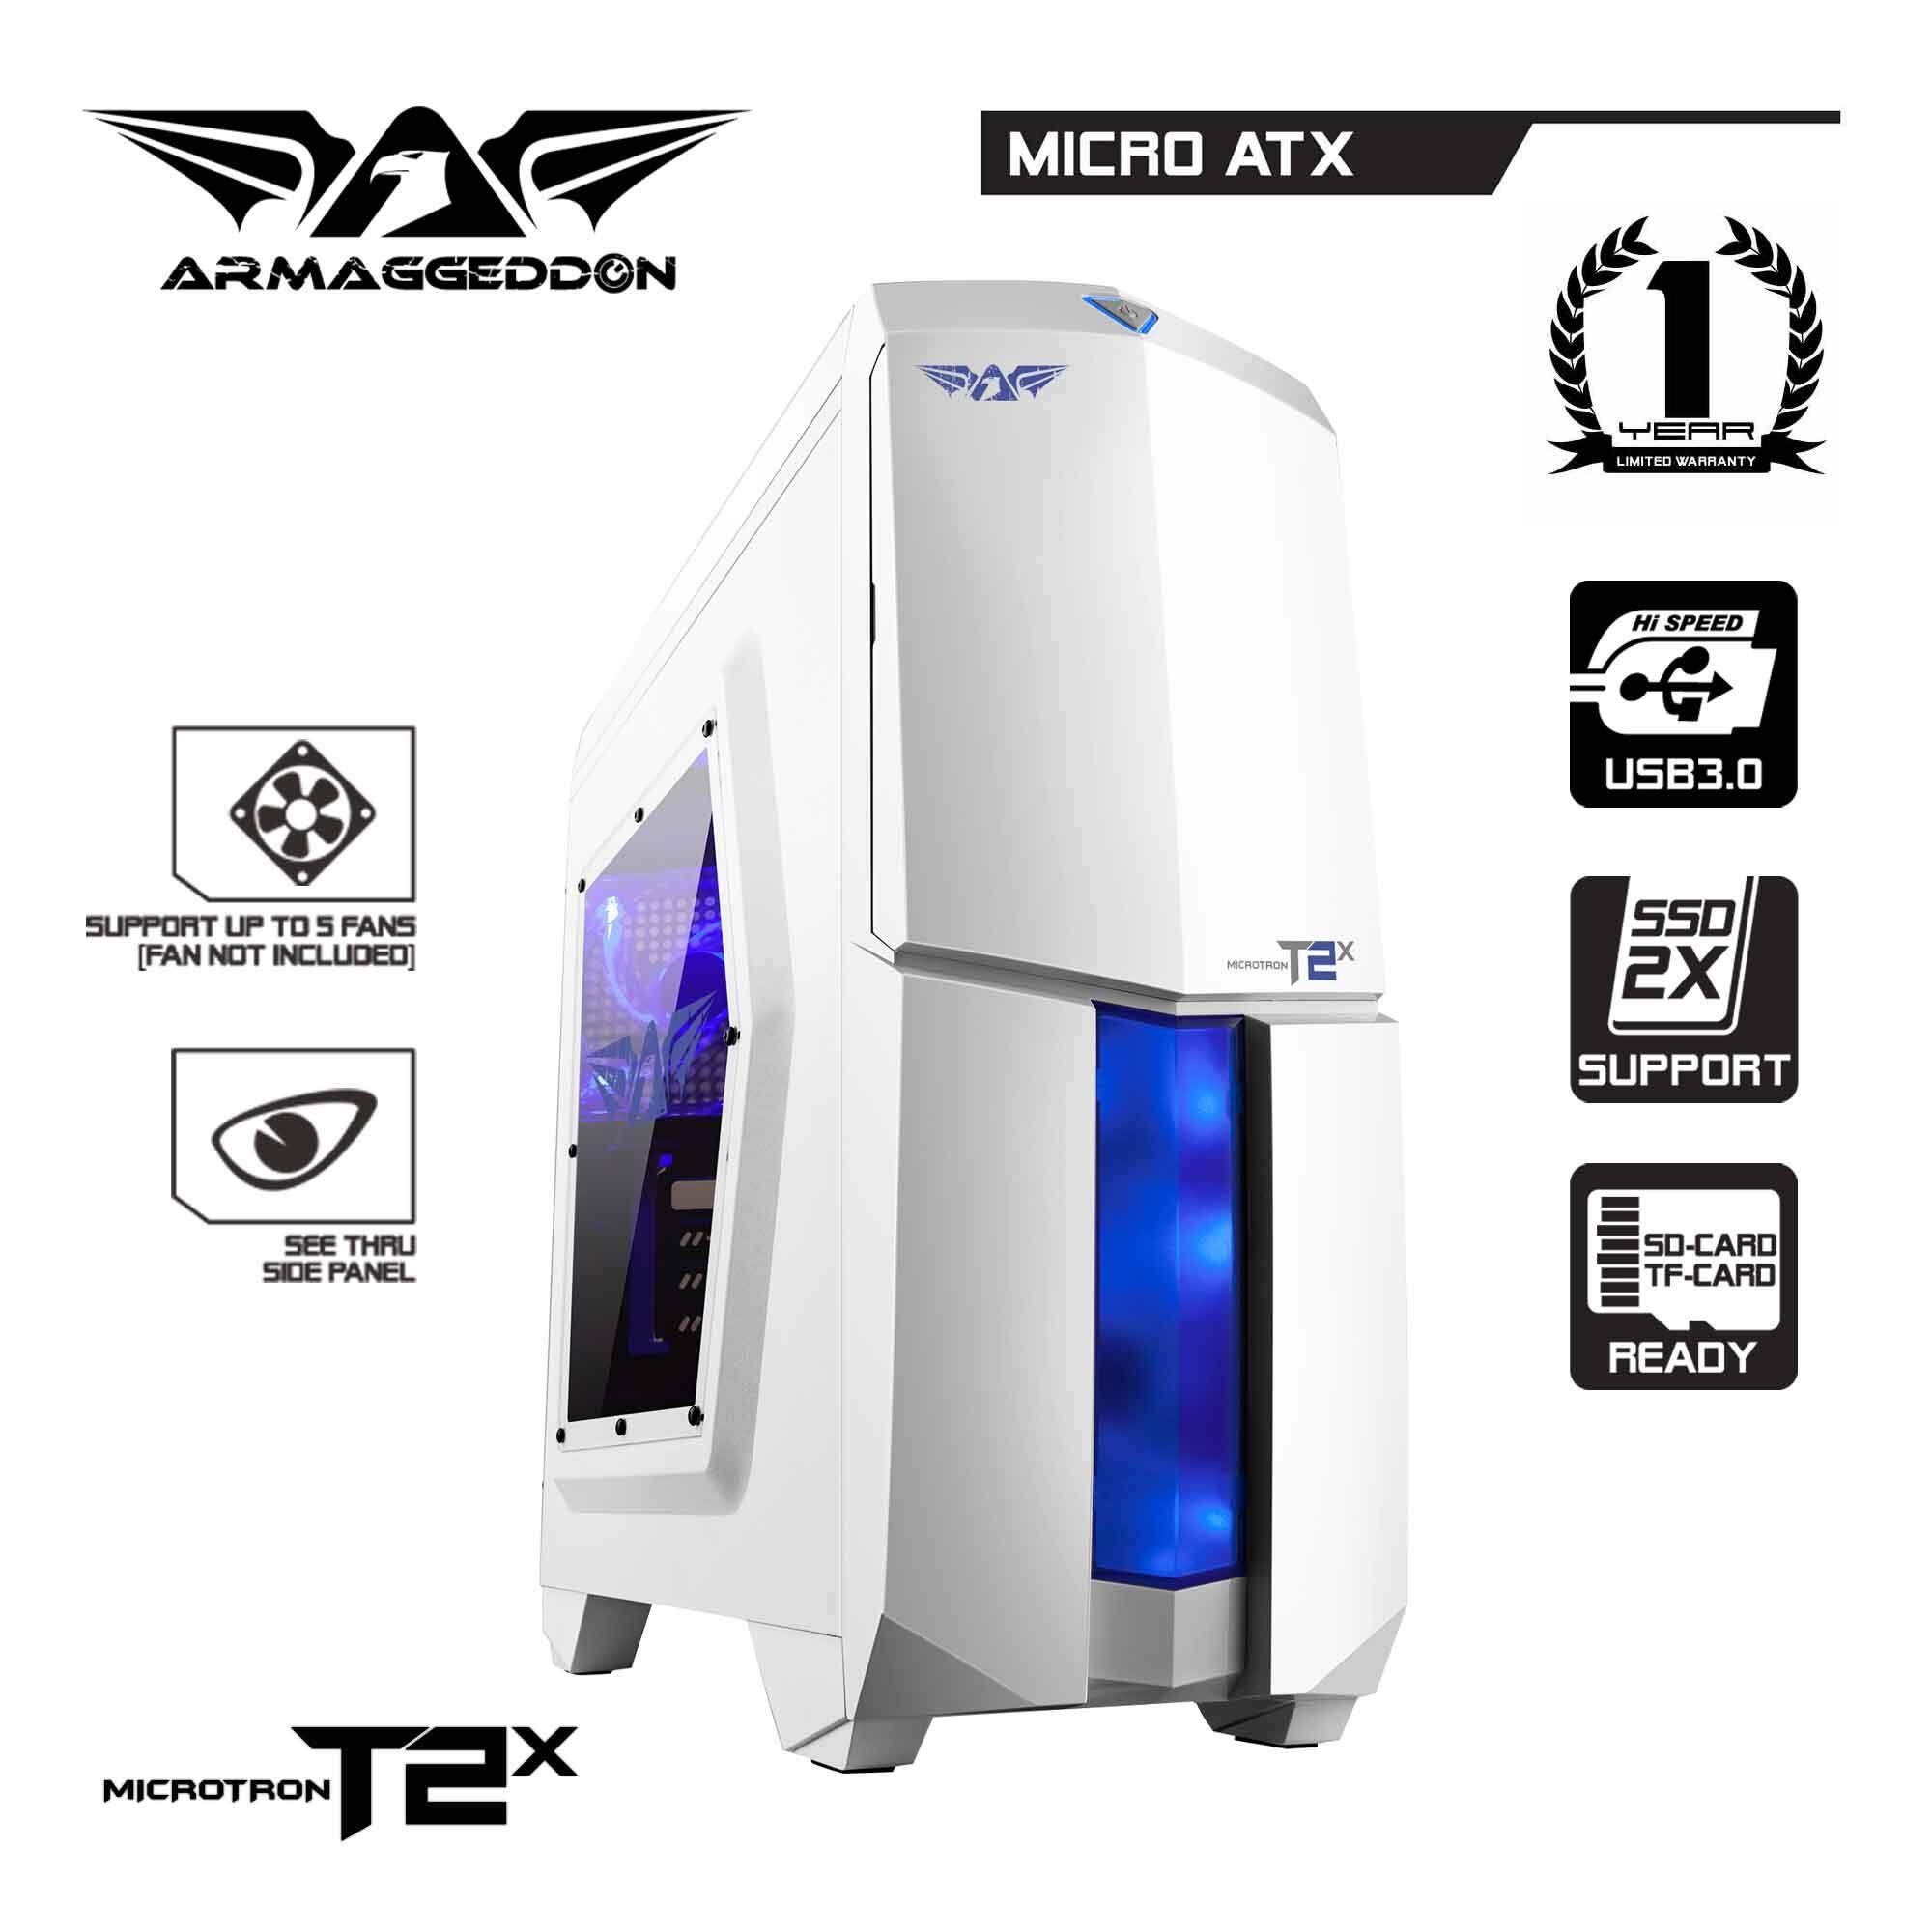 (PROMOTION) Armaggeddon Microtron T2x Gaming PC Chassis Malaysia